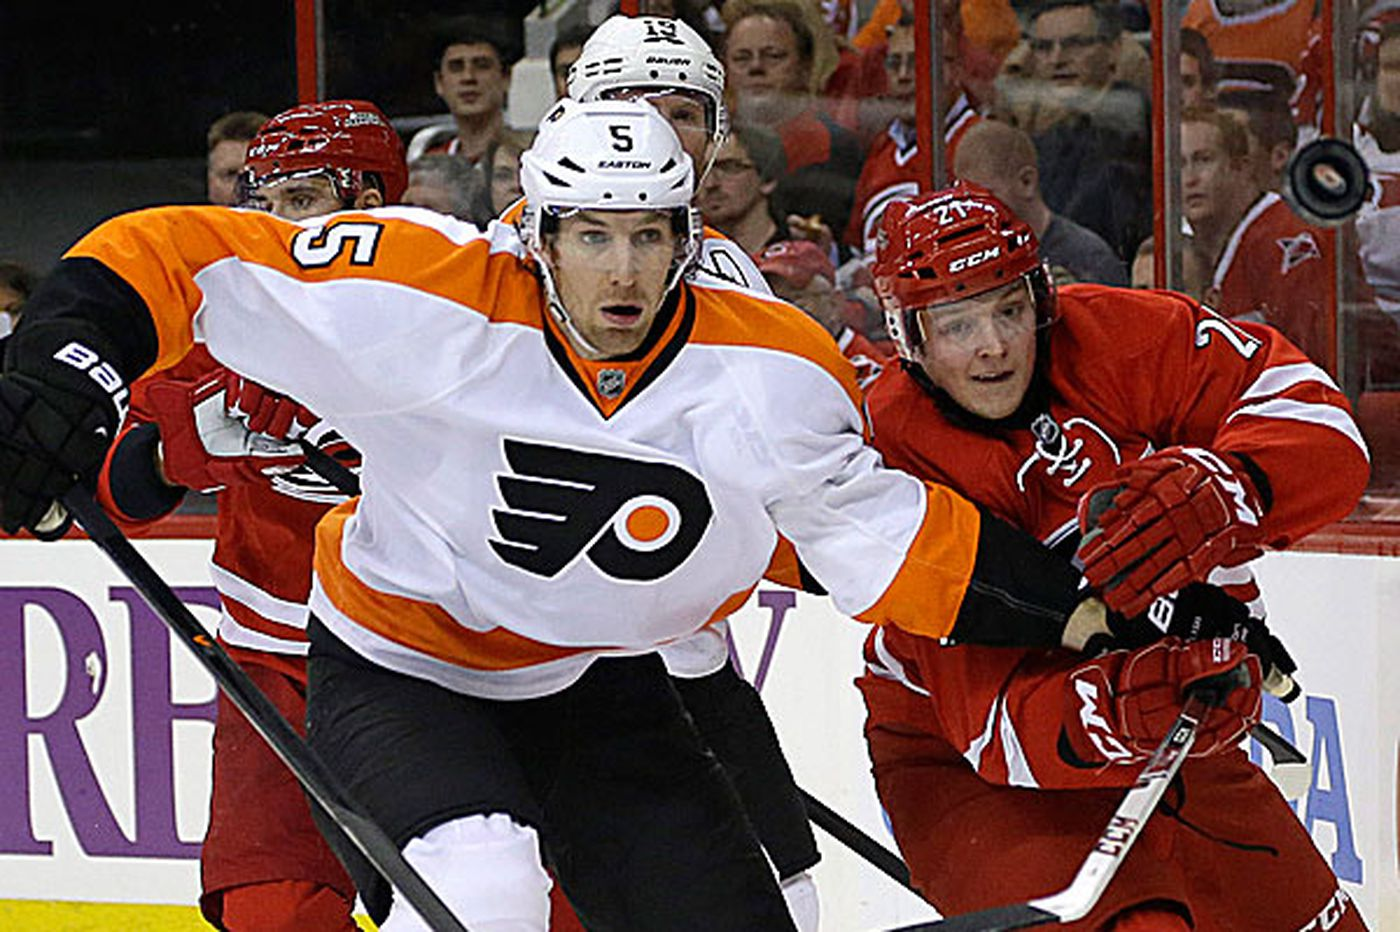 Flyers say their struggles this season are mental